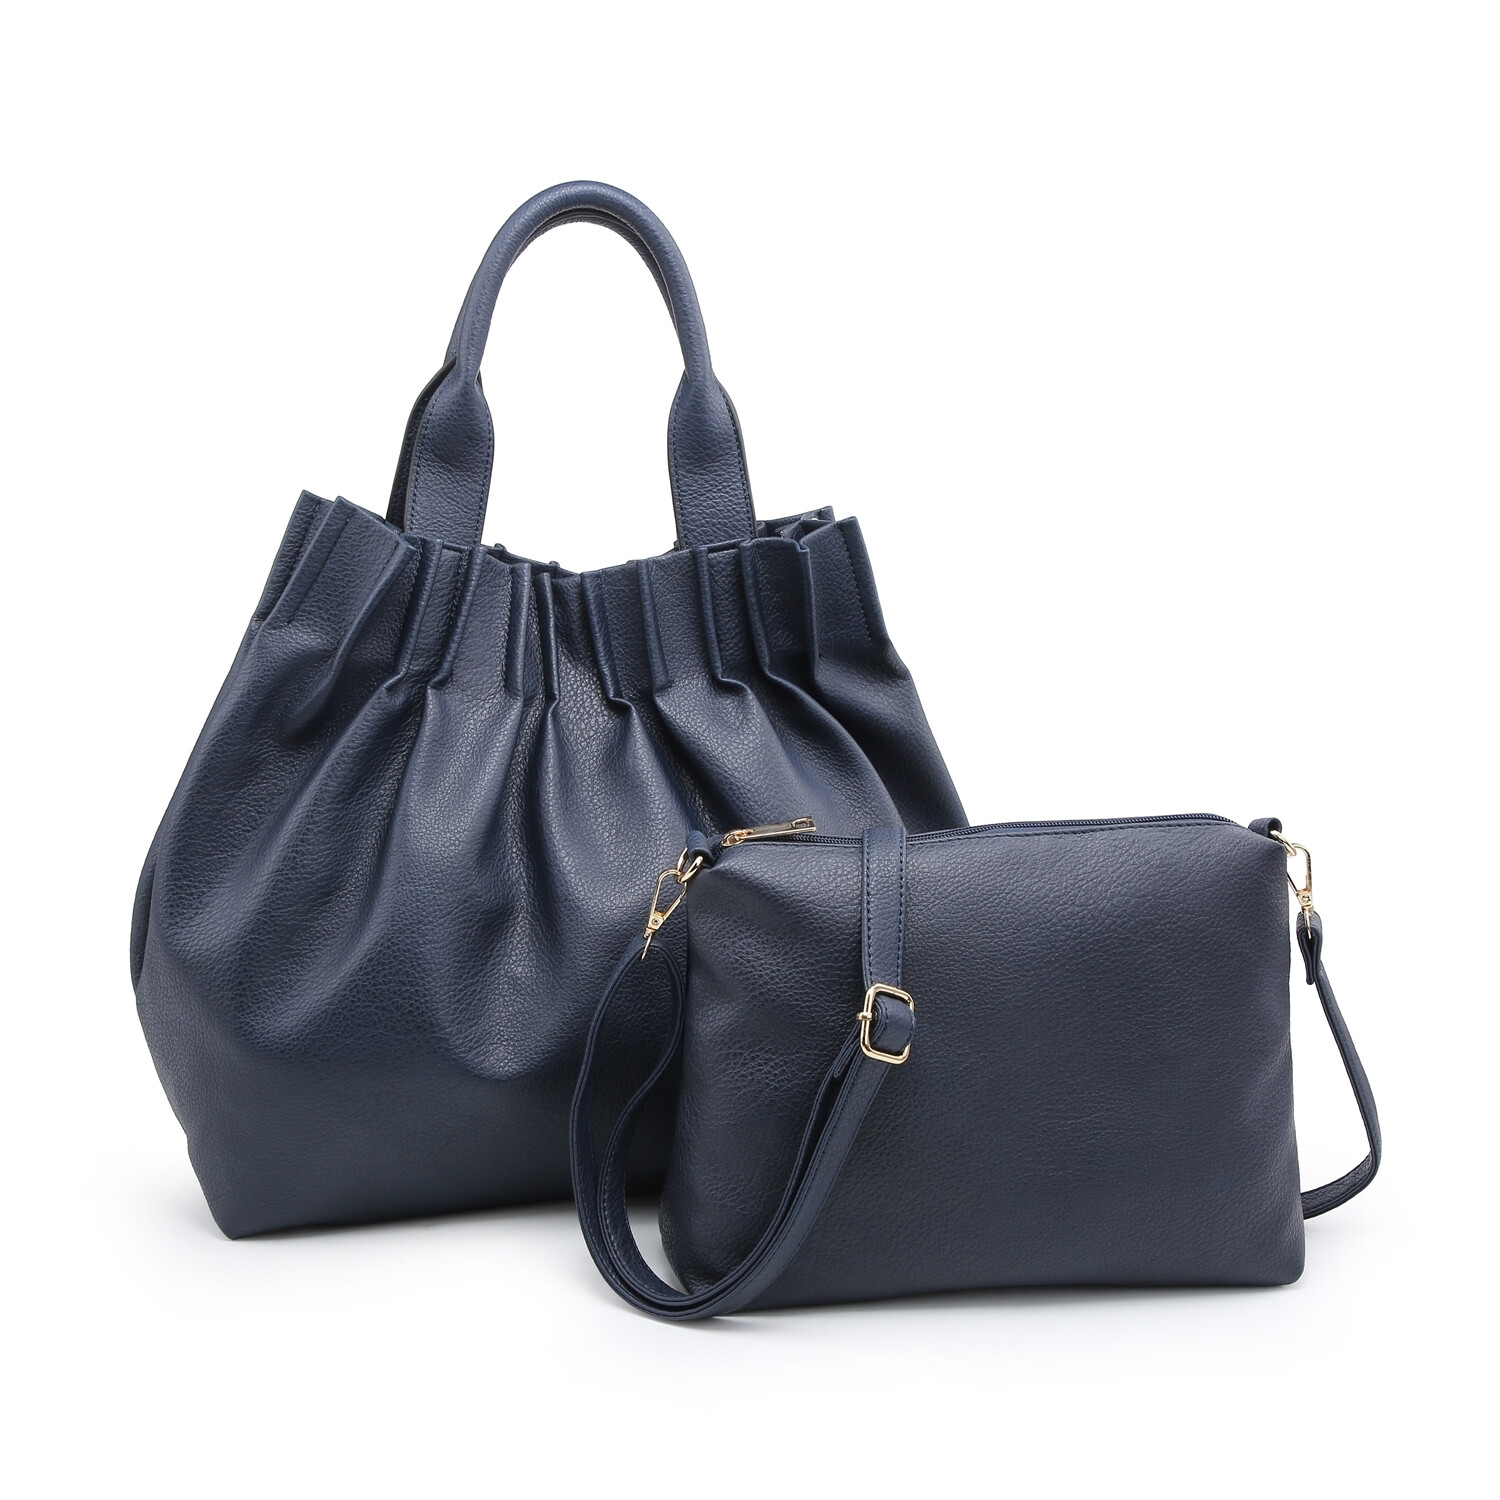 Chloe Two In One Tote Black